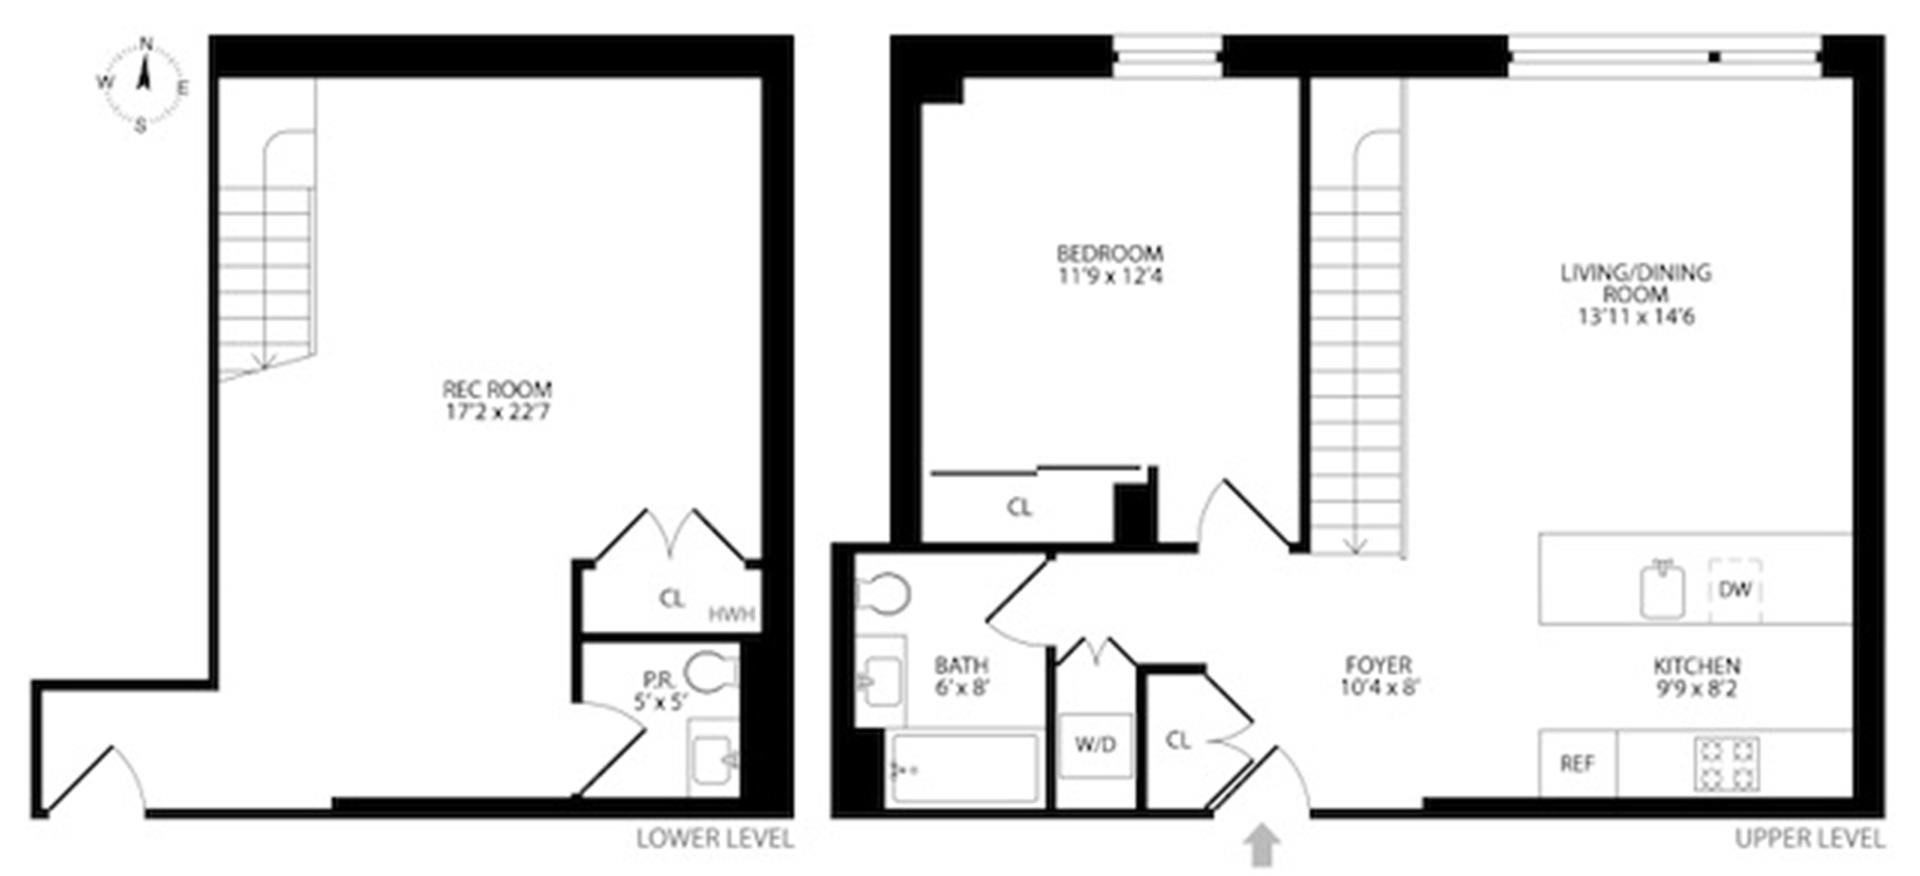 Floor plan of 204 Monroe St, 1A - Bedford - Stuyvesant, New York